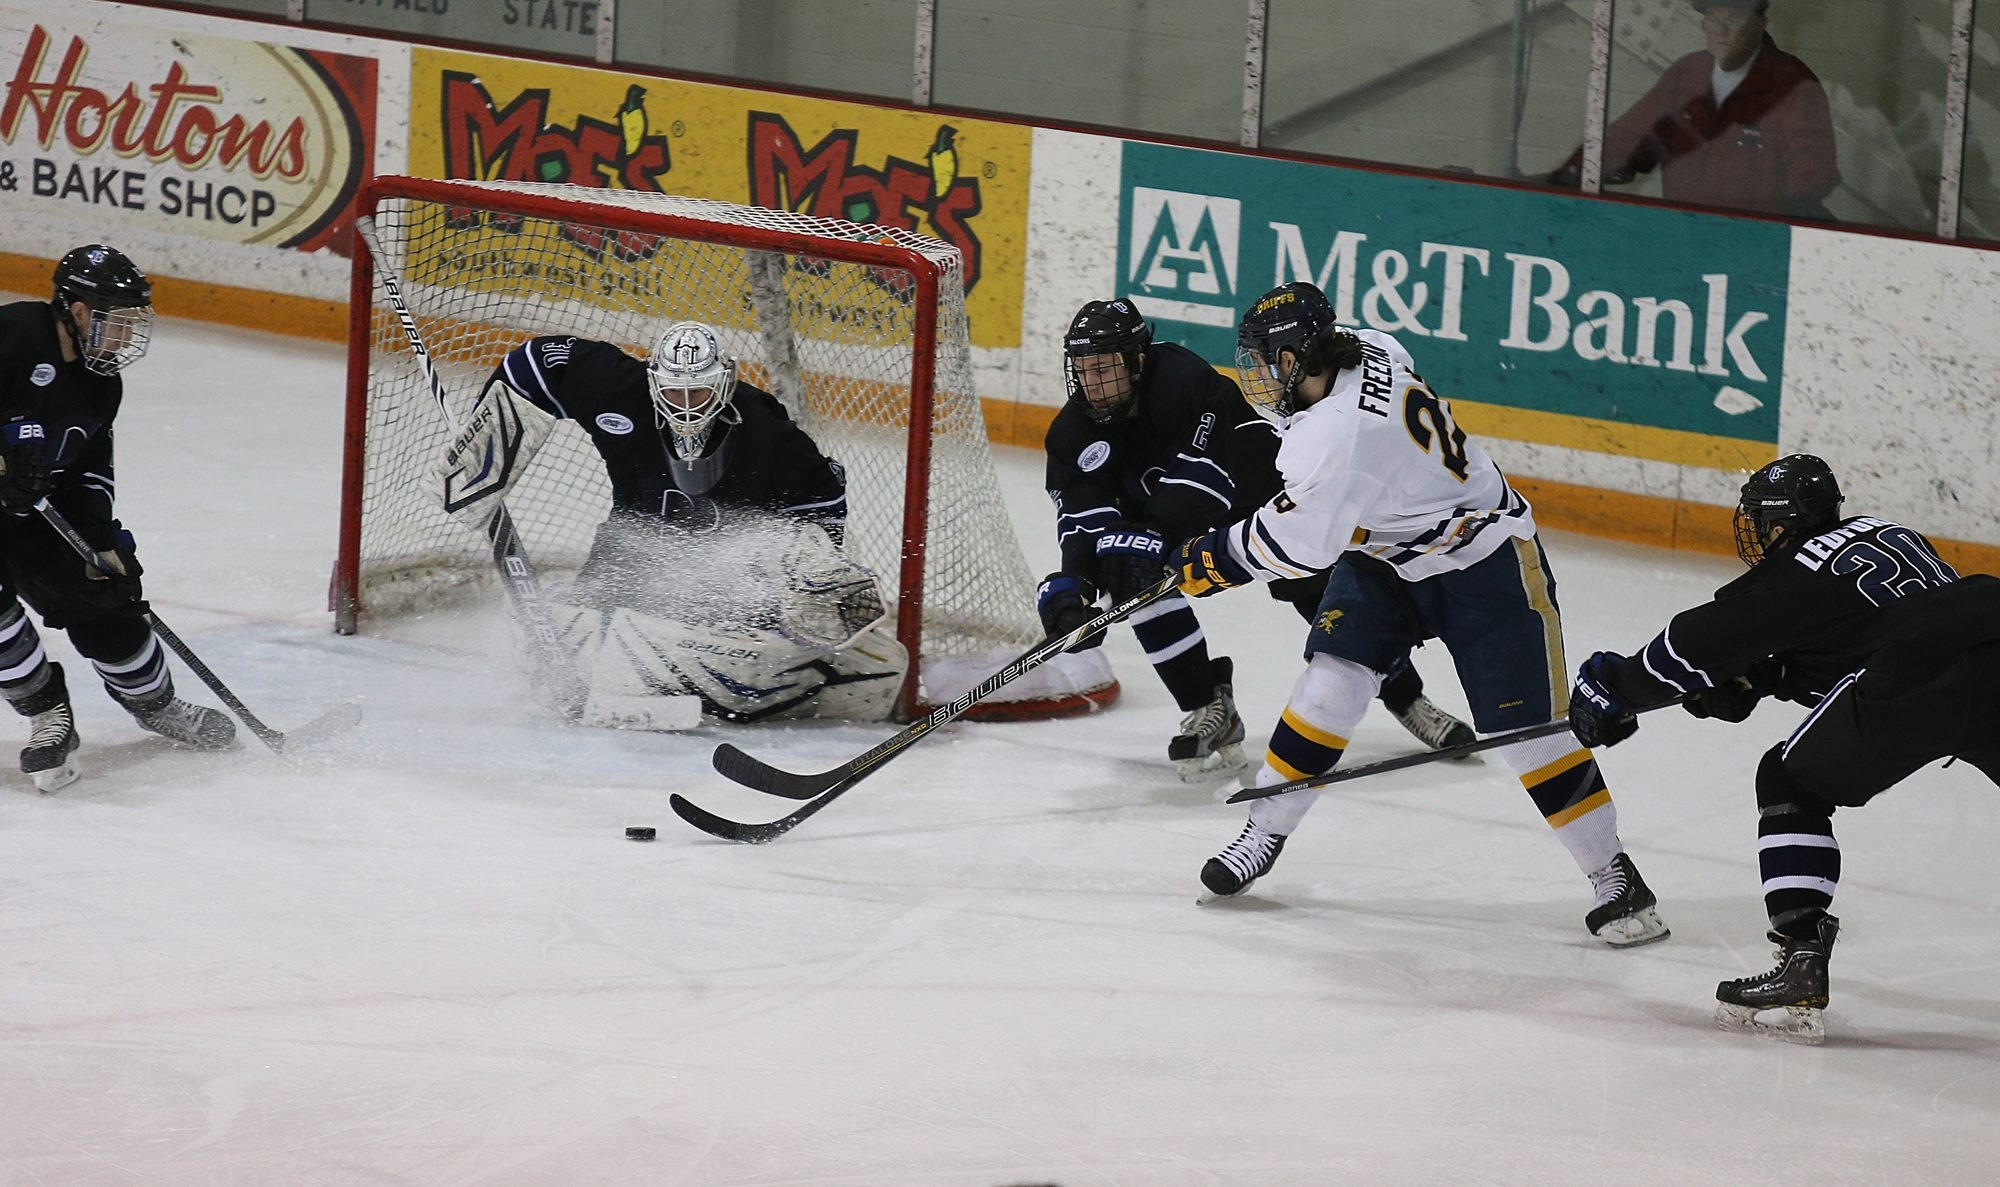 Canisius forward Cody Freeman gets a shot off against Bentley goalie Branden Komm and defenseman Matt Maher at Buffalo State College on Sunday.